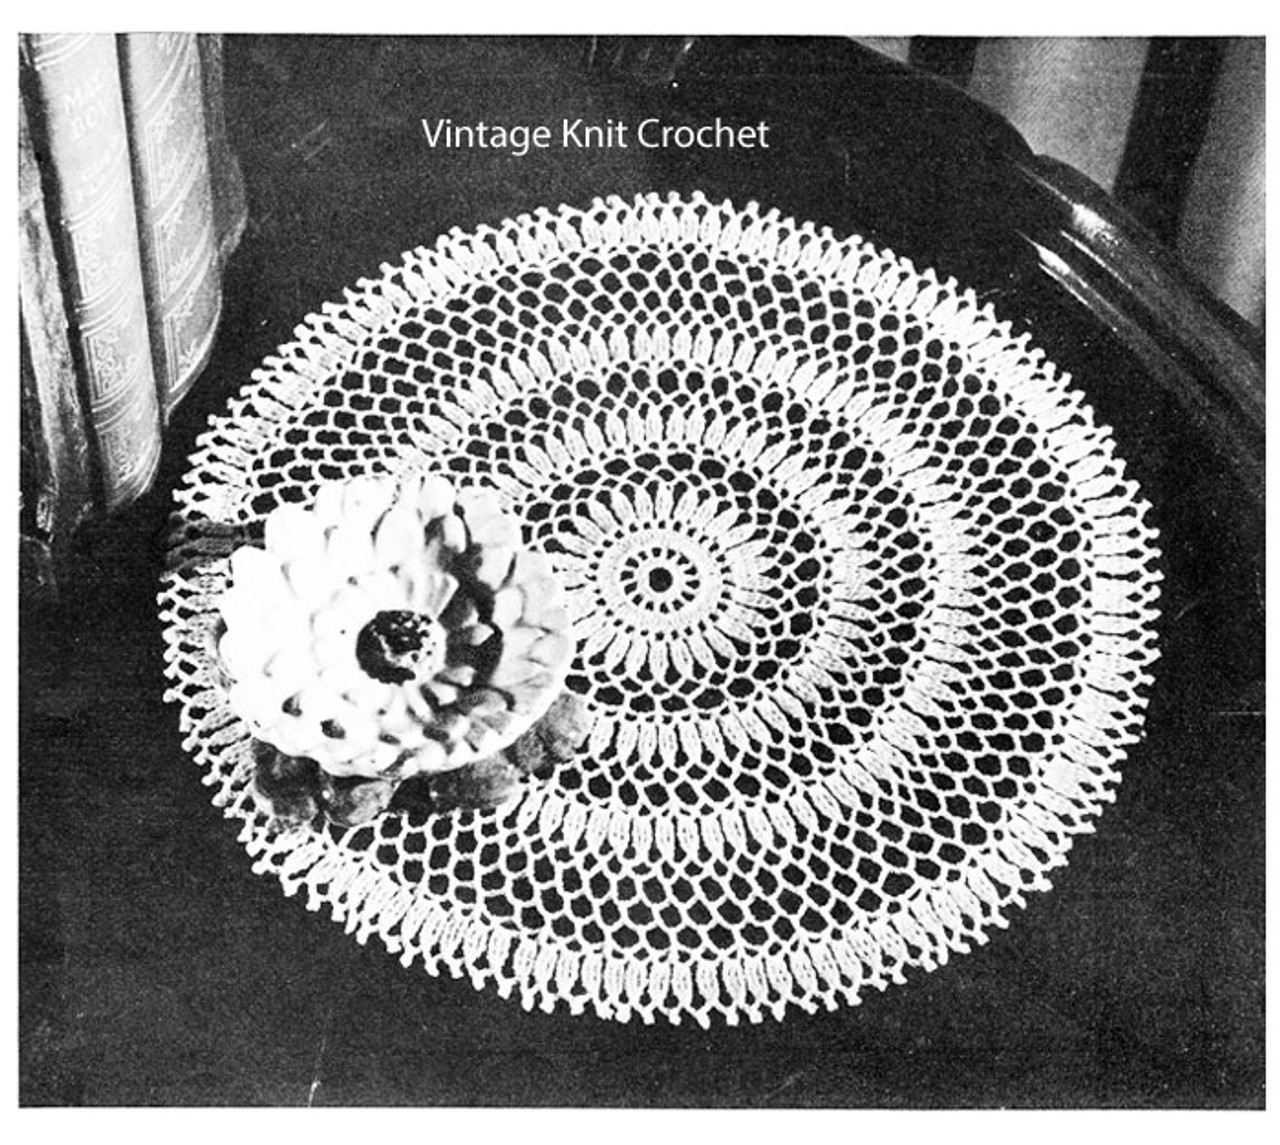 Small Cluster Doily Crochet Pattern measures 8-1/2 inches